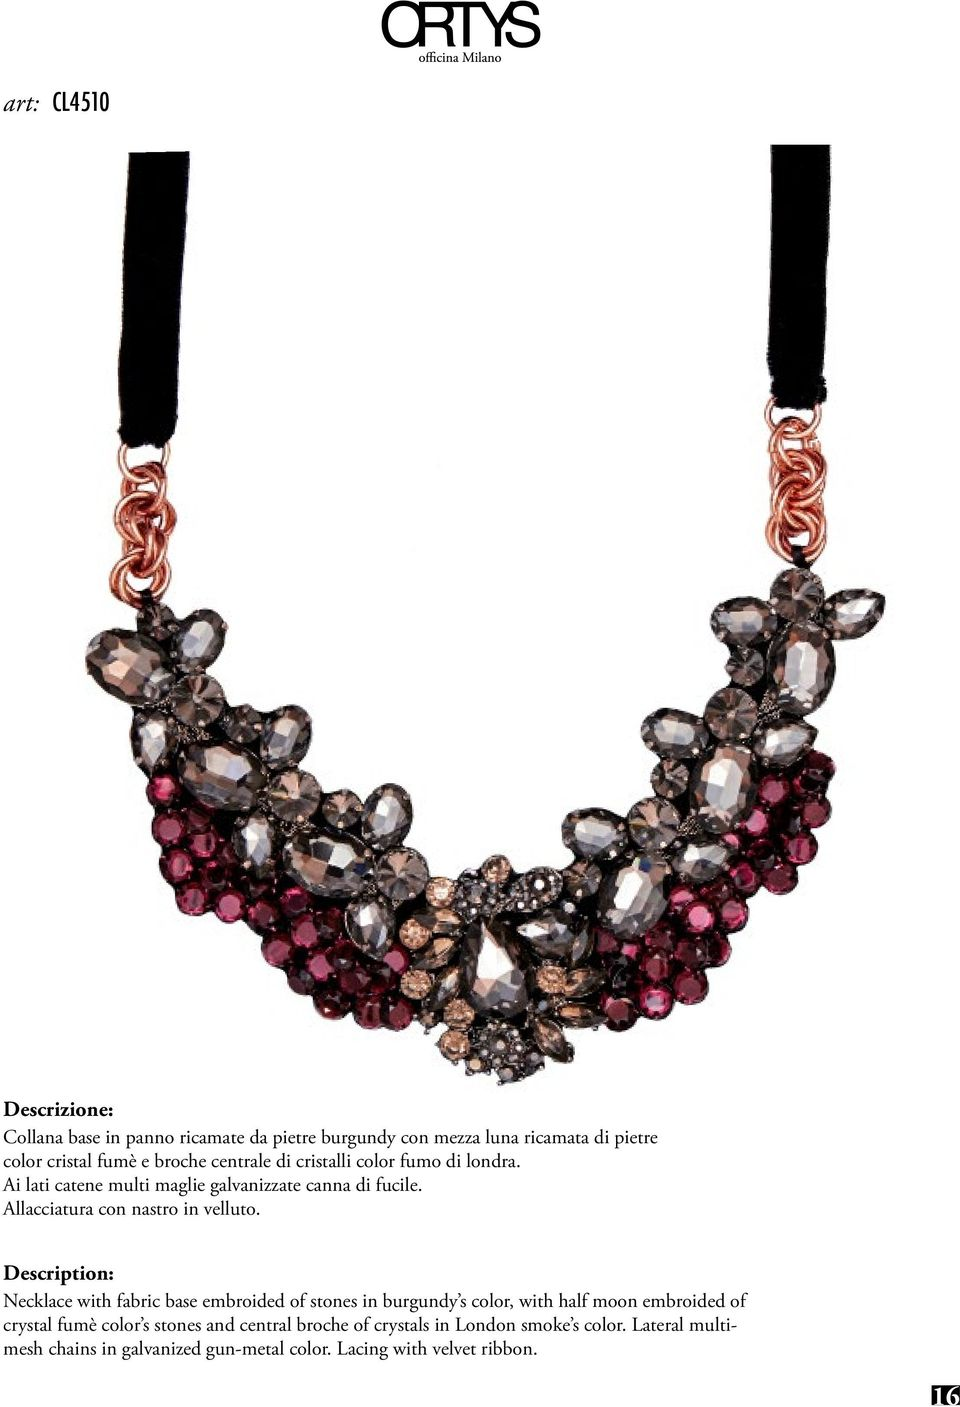 Necklace with fabric base embroided of stones in burgundy s color, with half moon embroided of crystal fumè color s stones and